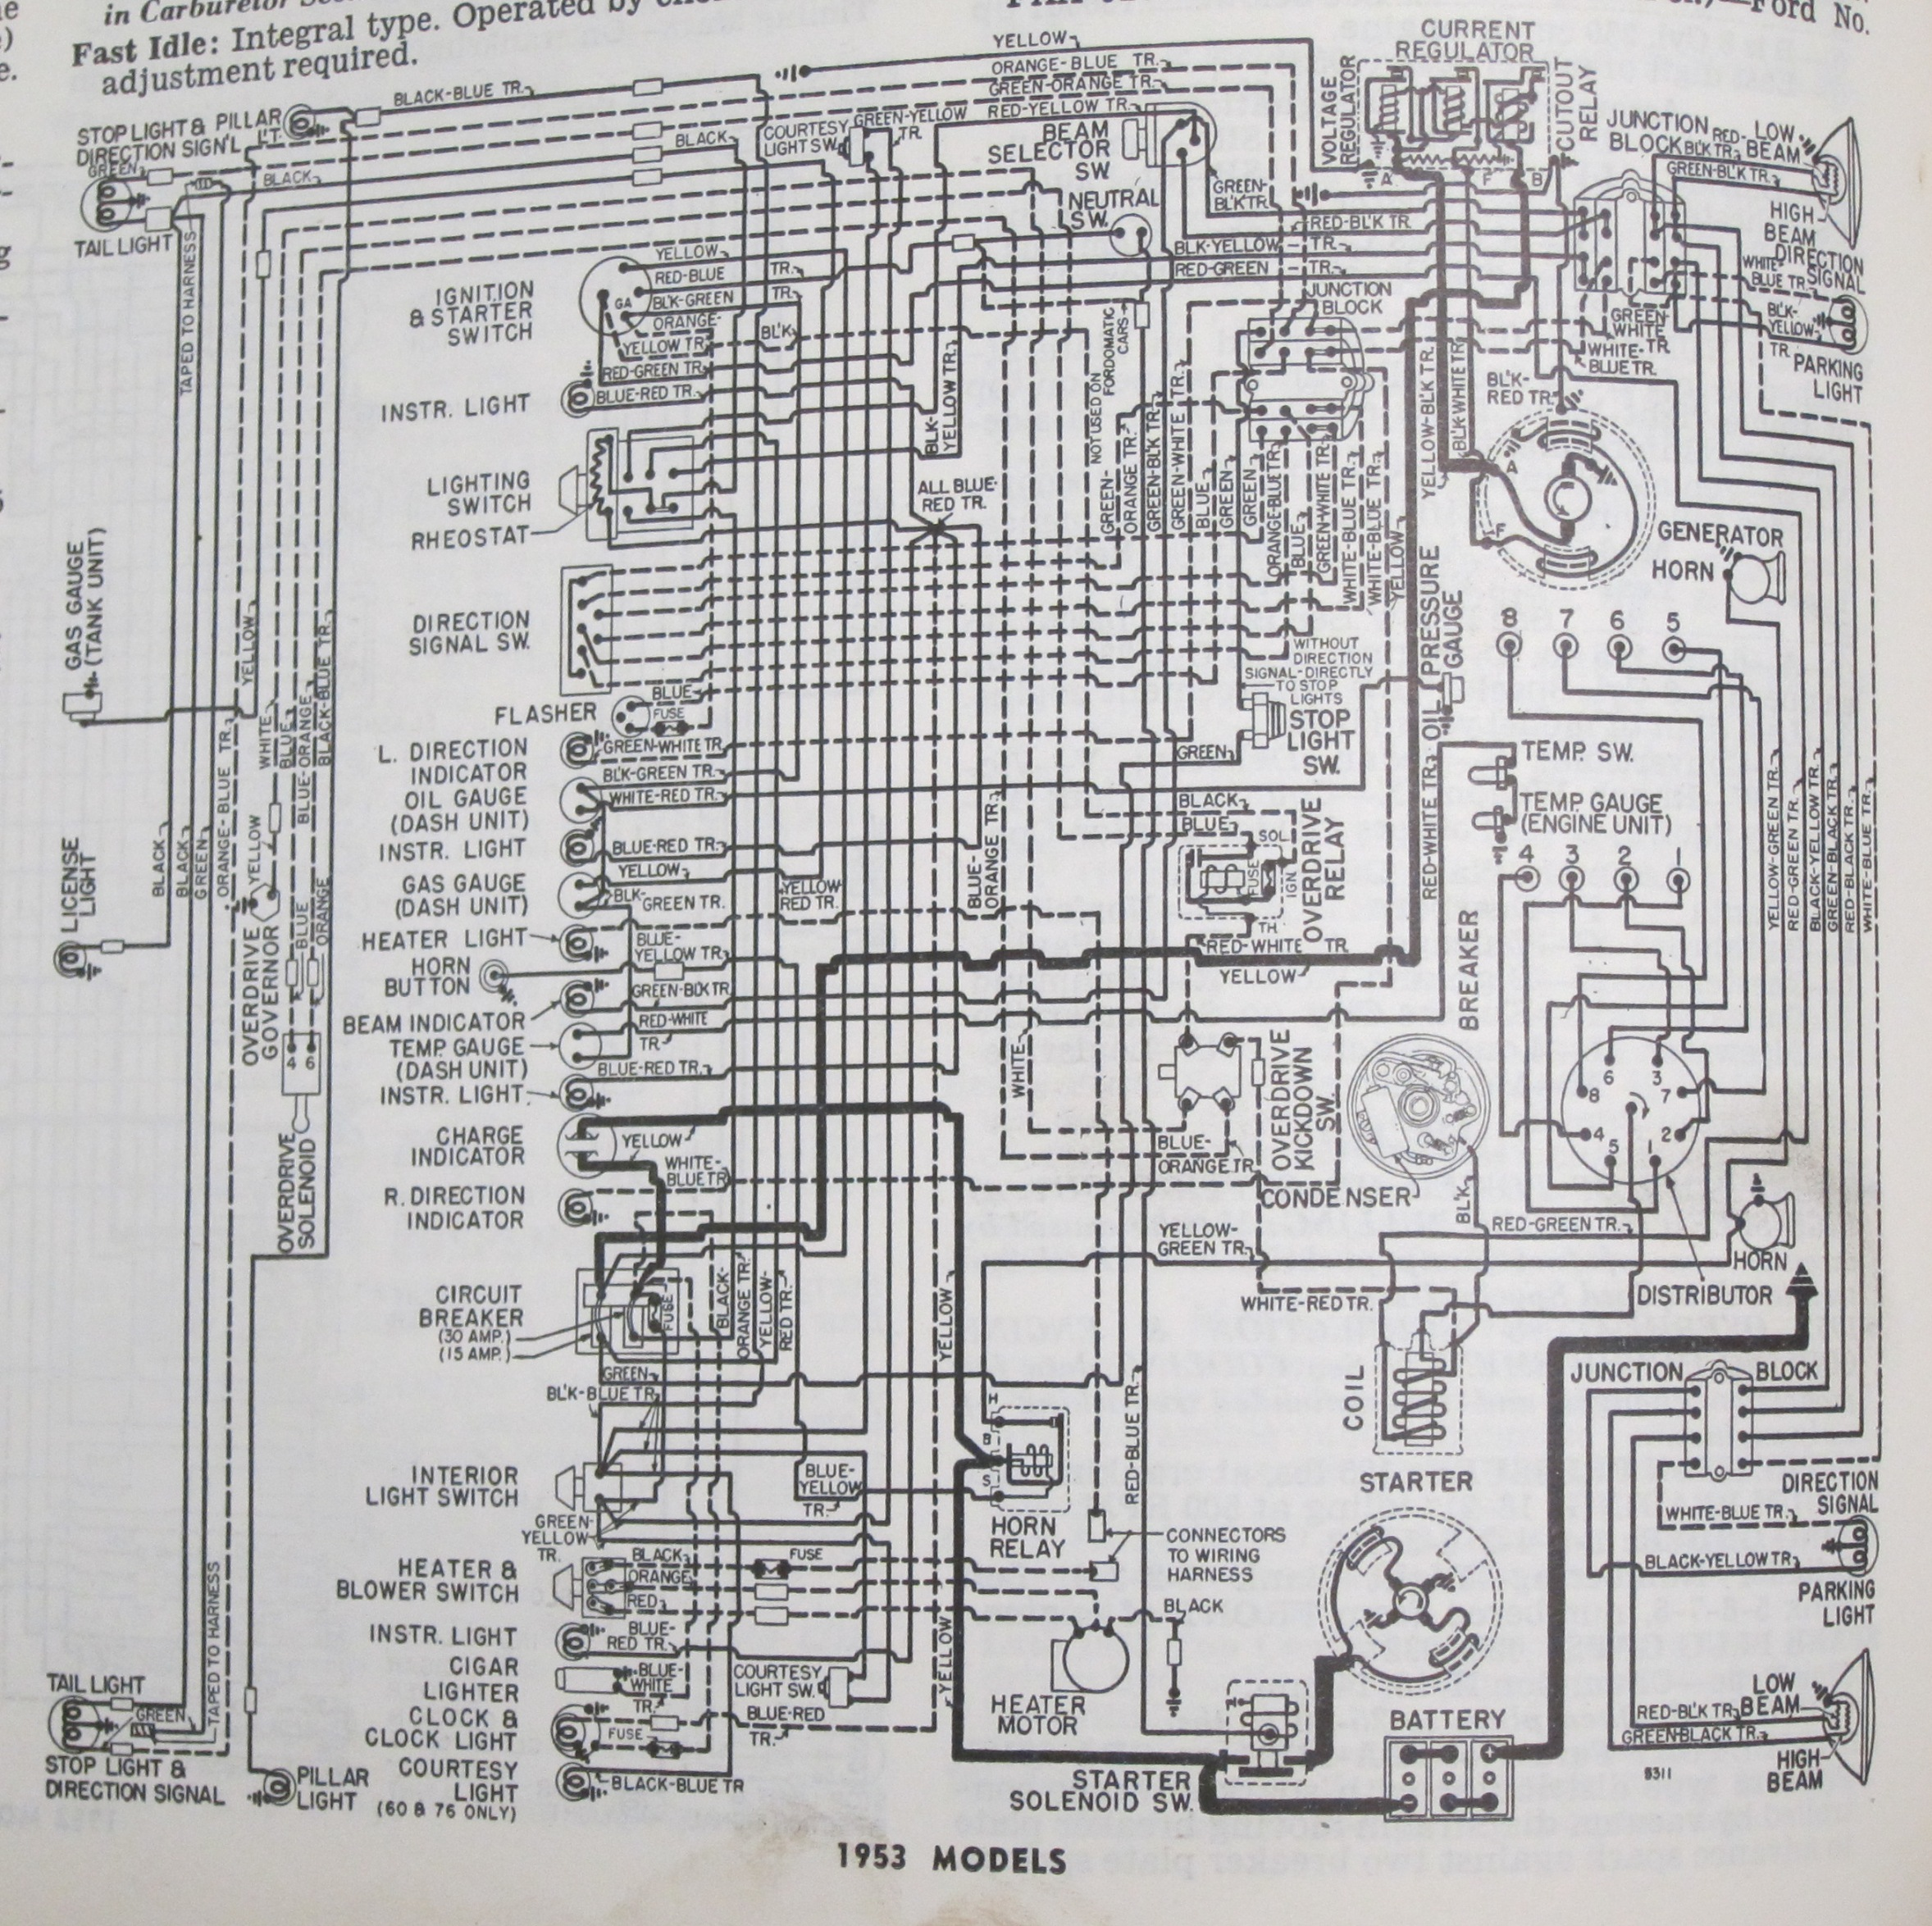 1953 Ford Main Line Wiring Diagram Wiring Diagram Search A Search A Lechicchedimammavale It